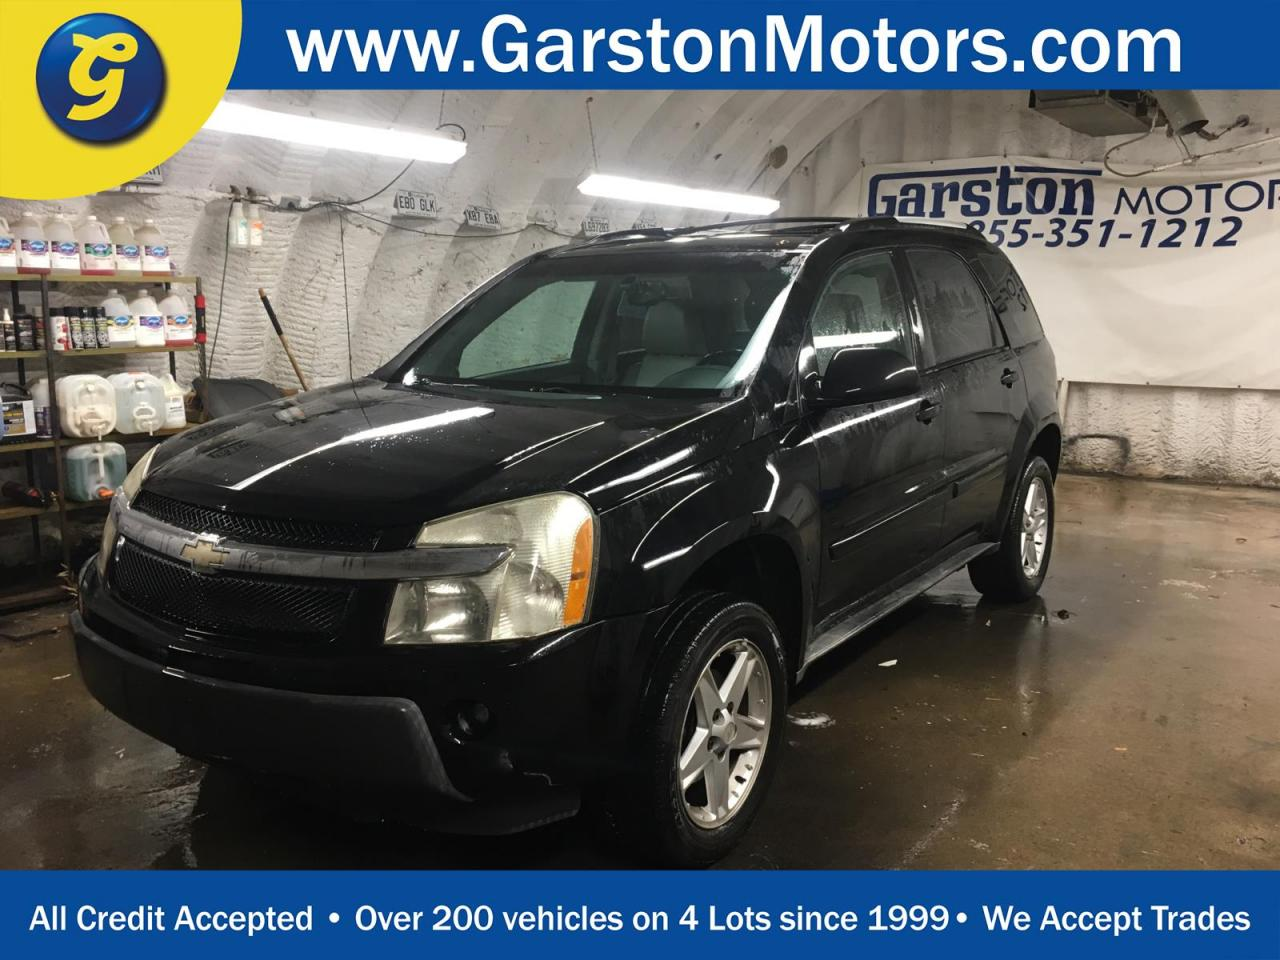 Equinox 2005 chevrolet equinox for sale : Used 2005 Chevrolet Equinox LT*****AS IS SALE****LEATHER*POWER ...